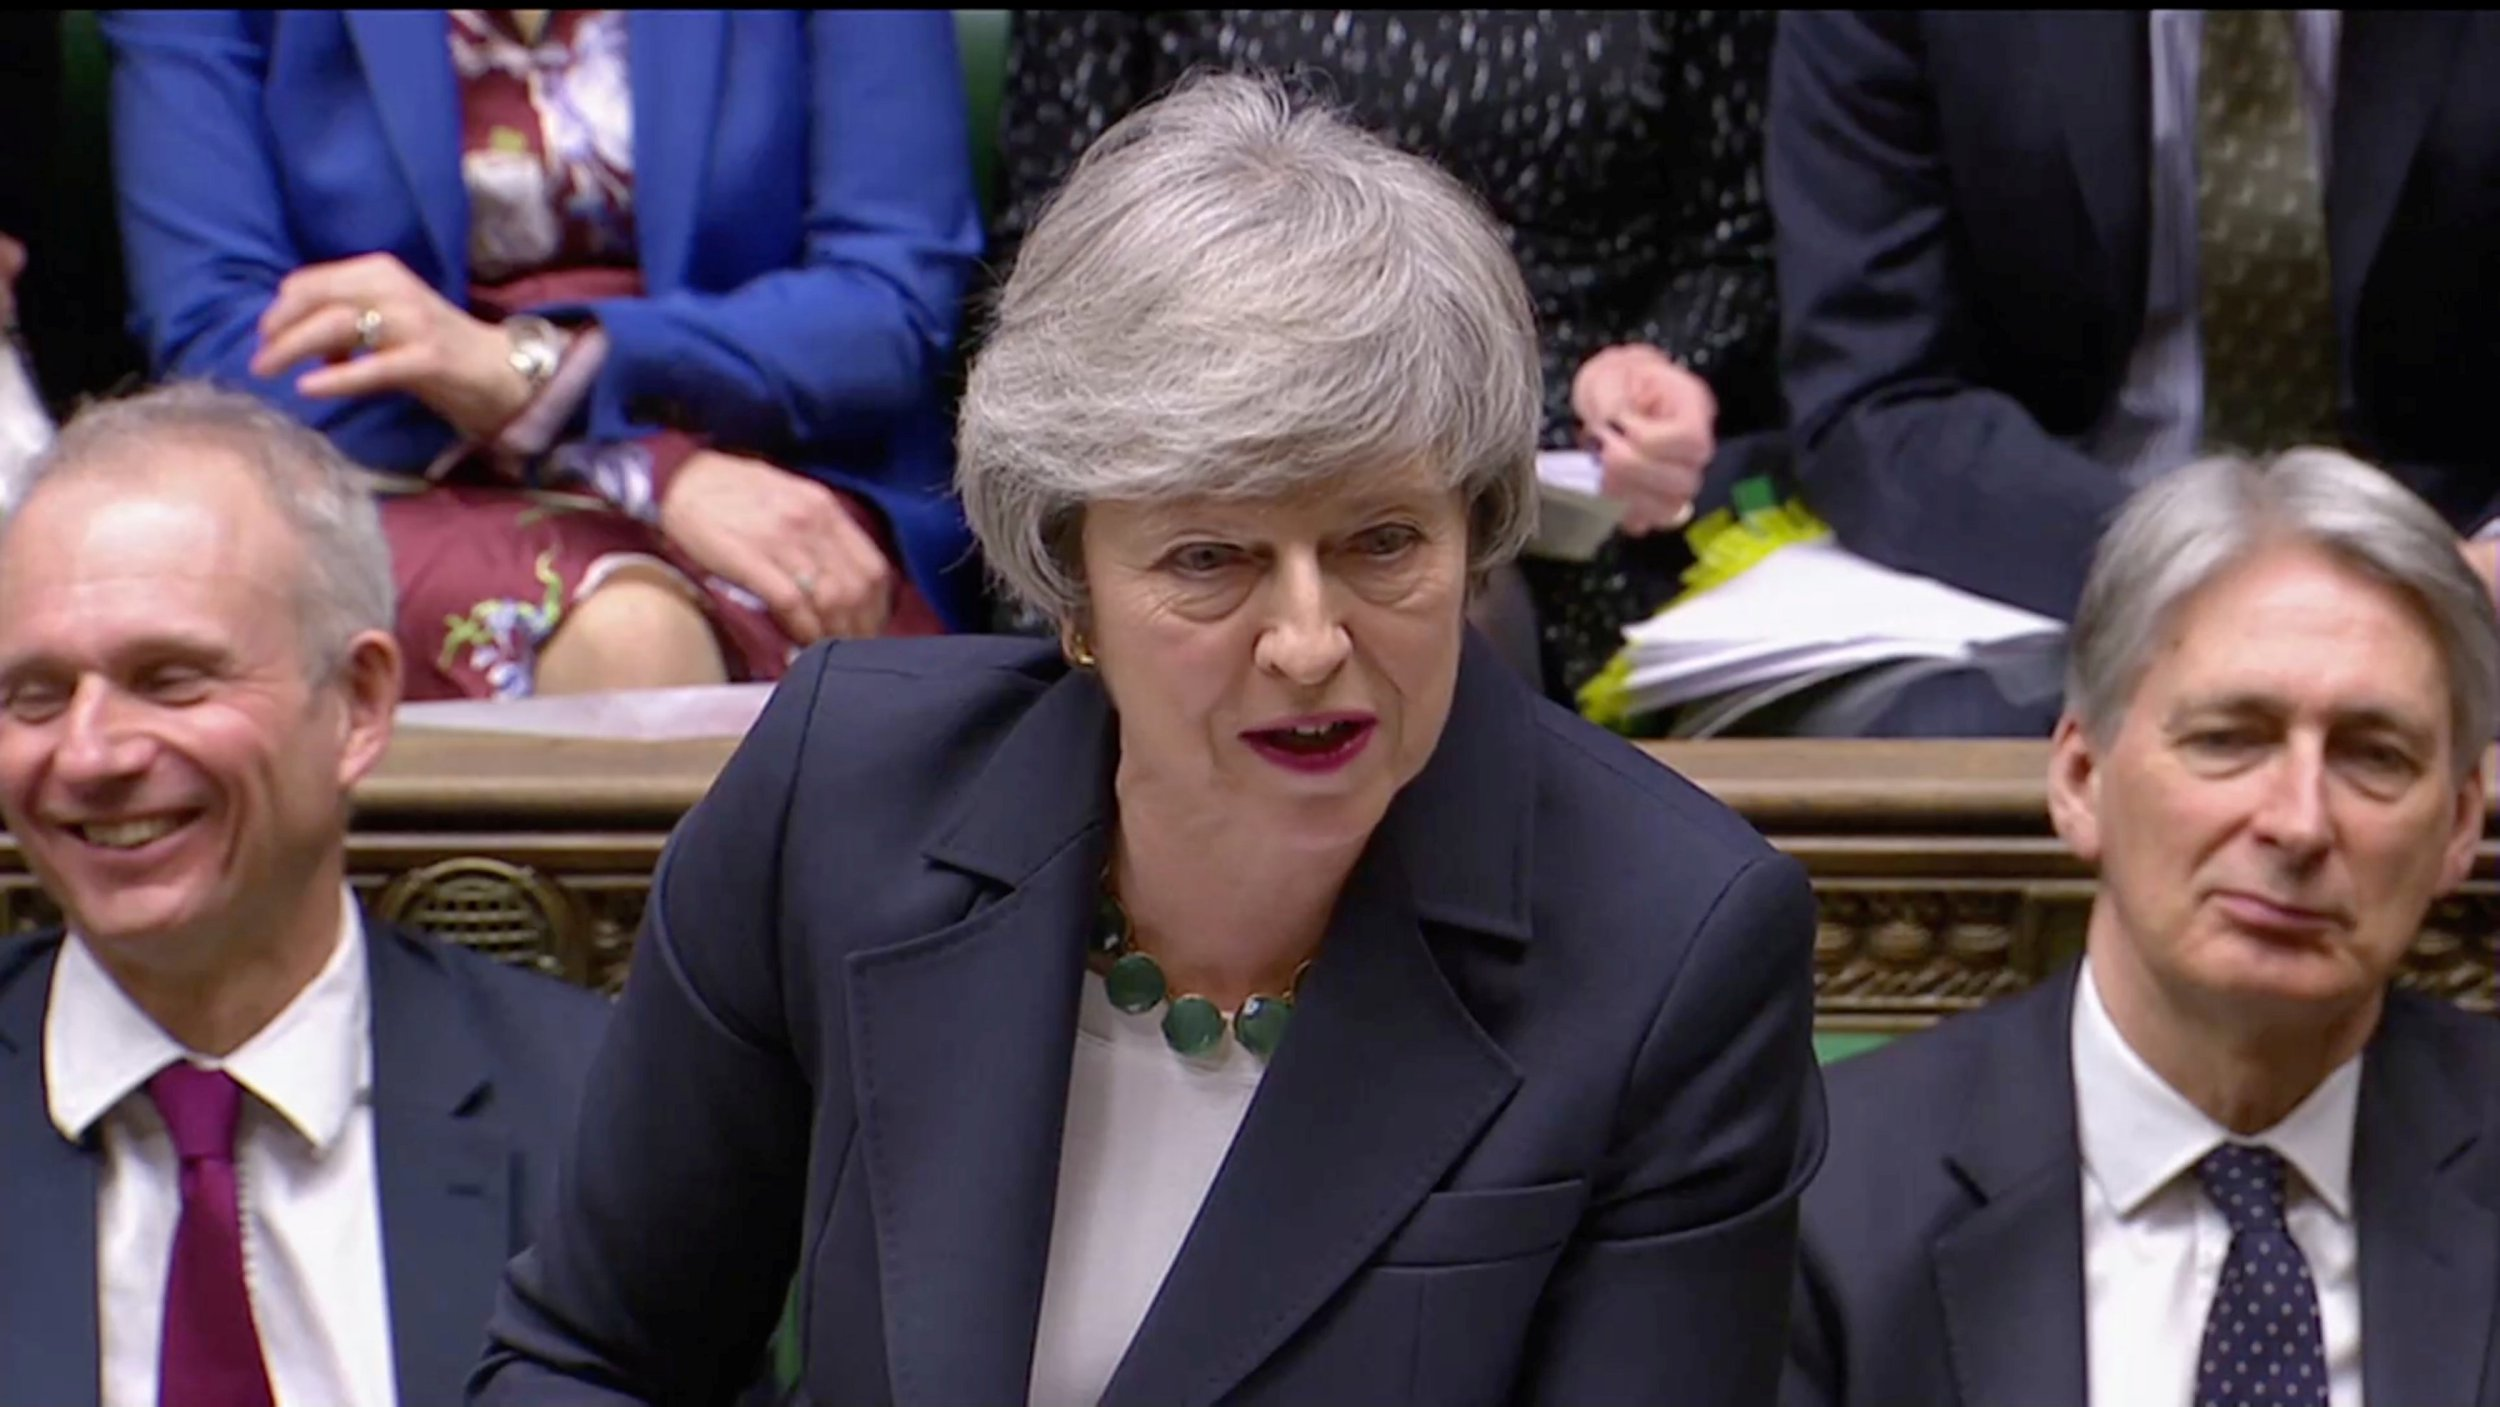 Britain's Prime Minister Theresa May speaks in Parliament, London, Britain, February 13, 2019, in this screen grab taken from video. Reuters TV via REUTERS